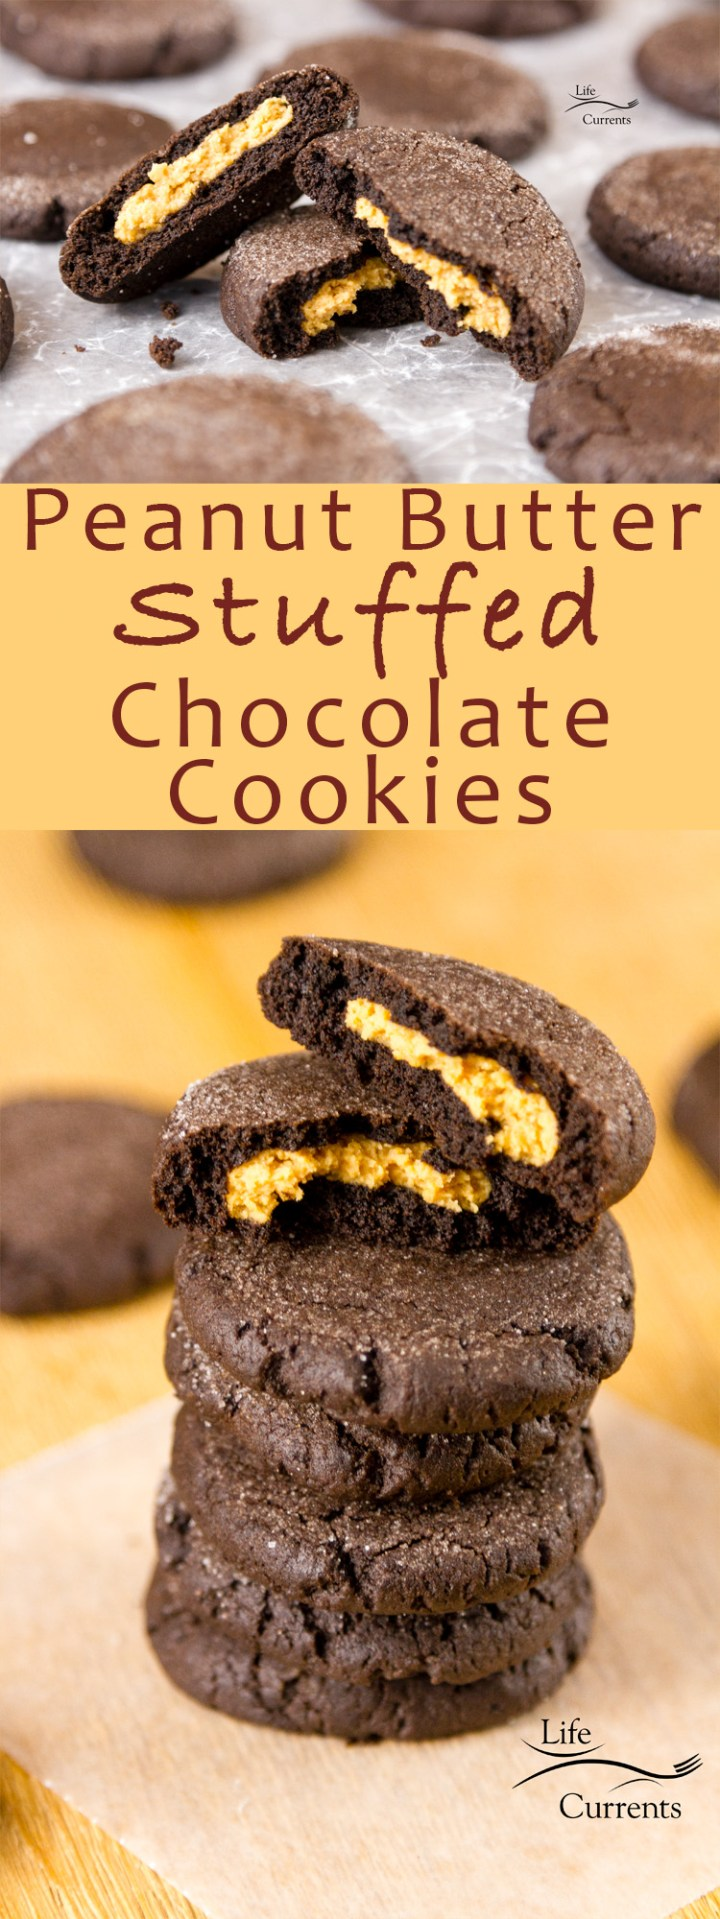 Peanut Butter Stuffed Chocolate Cookies - Sweet creamy peanut butter surrounded by a soft chocolate cookie #cookie #chocolate #peanutbutter